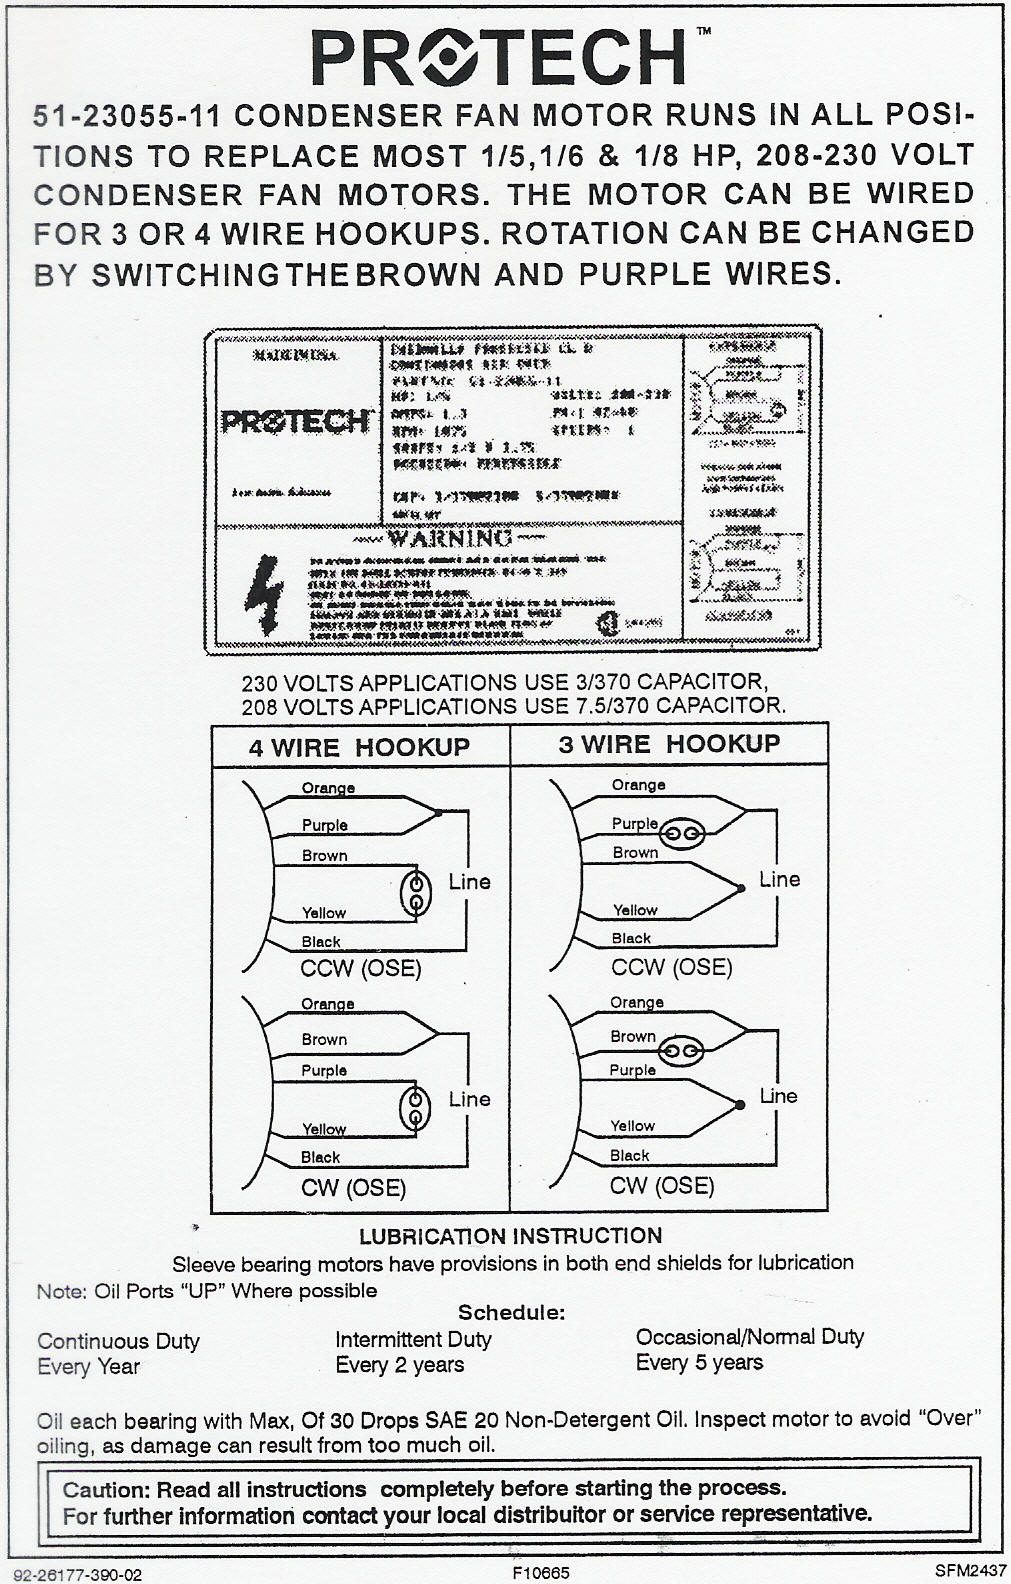 51 23055 11 wiring diagram rheem ruud condenser fan motor 51 23055 11 wiring diagram tempstar 2200 air conditioner wiring diagram at webbmarketing.co